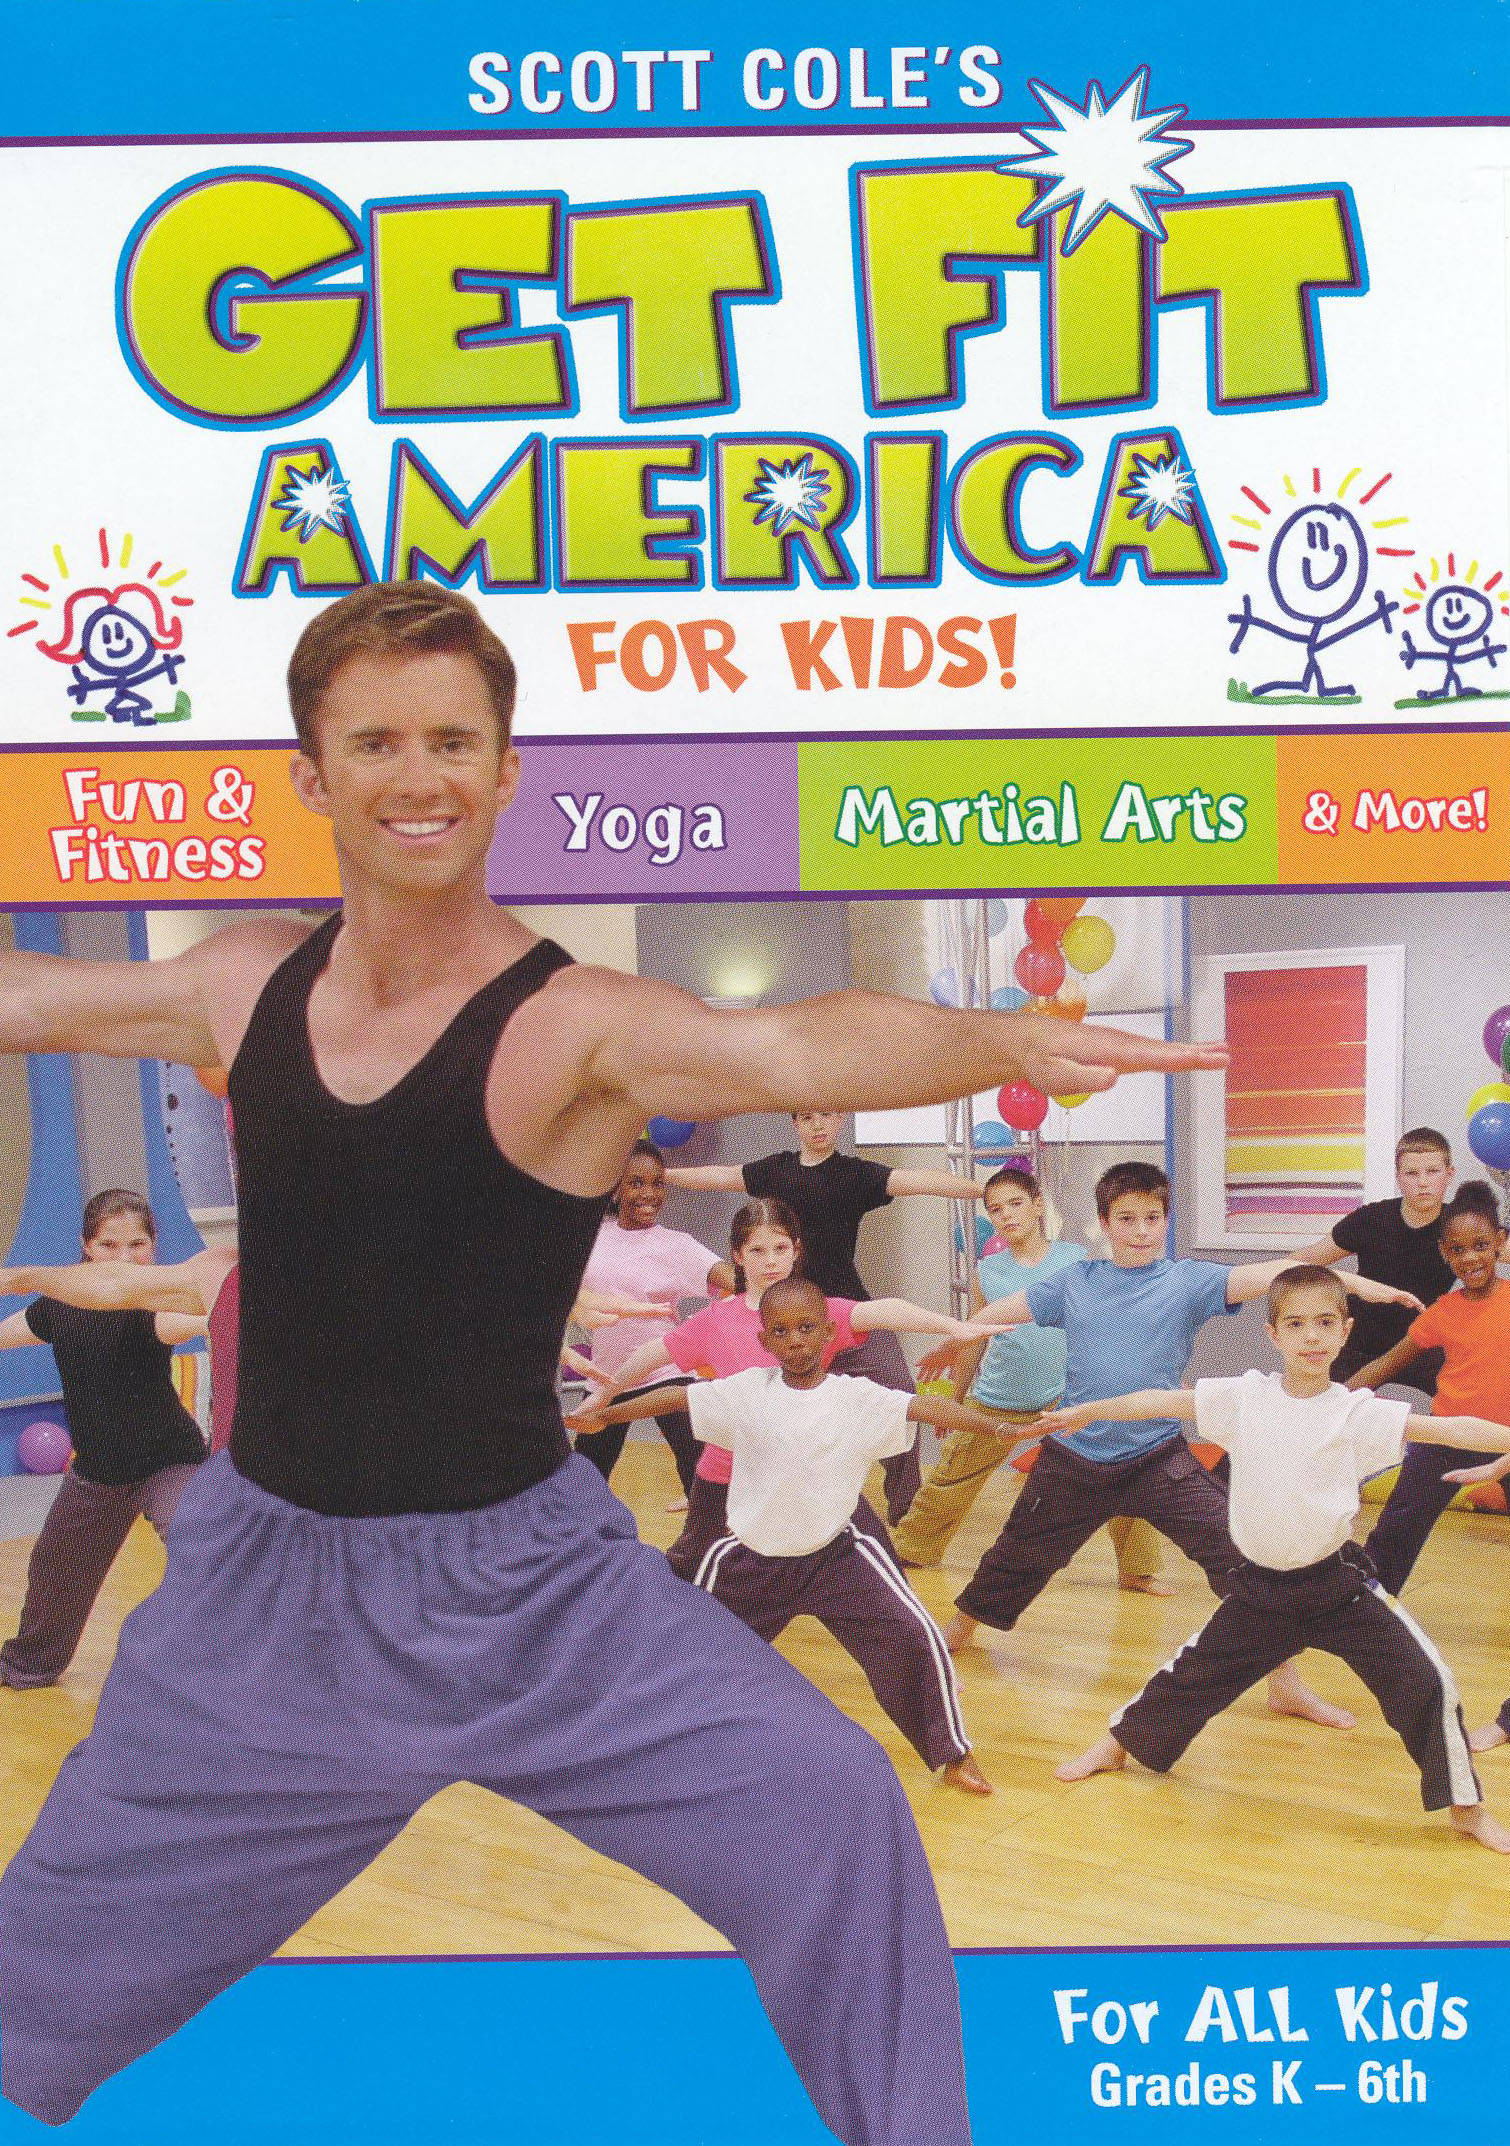 Scott Cole's Get Fit America for Kids